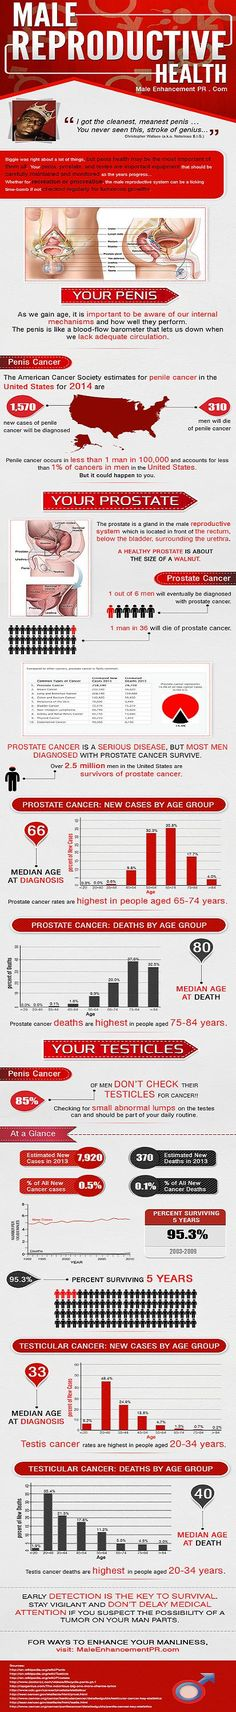 MALE REPRODUCTIVE HEALTH Infographic